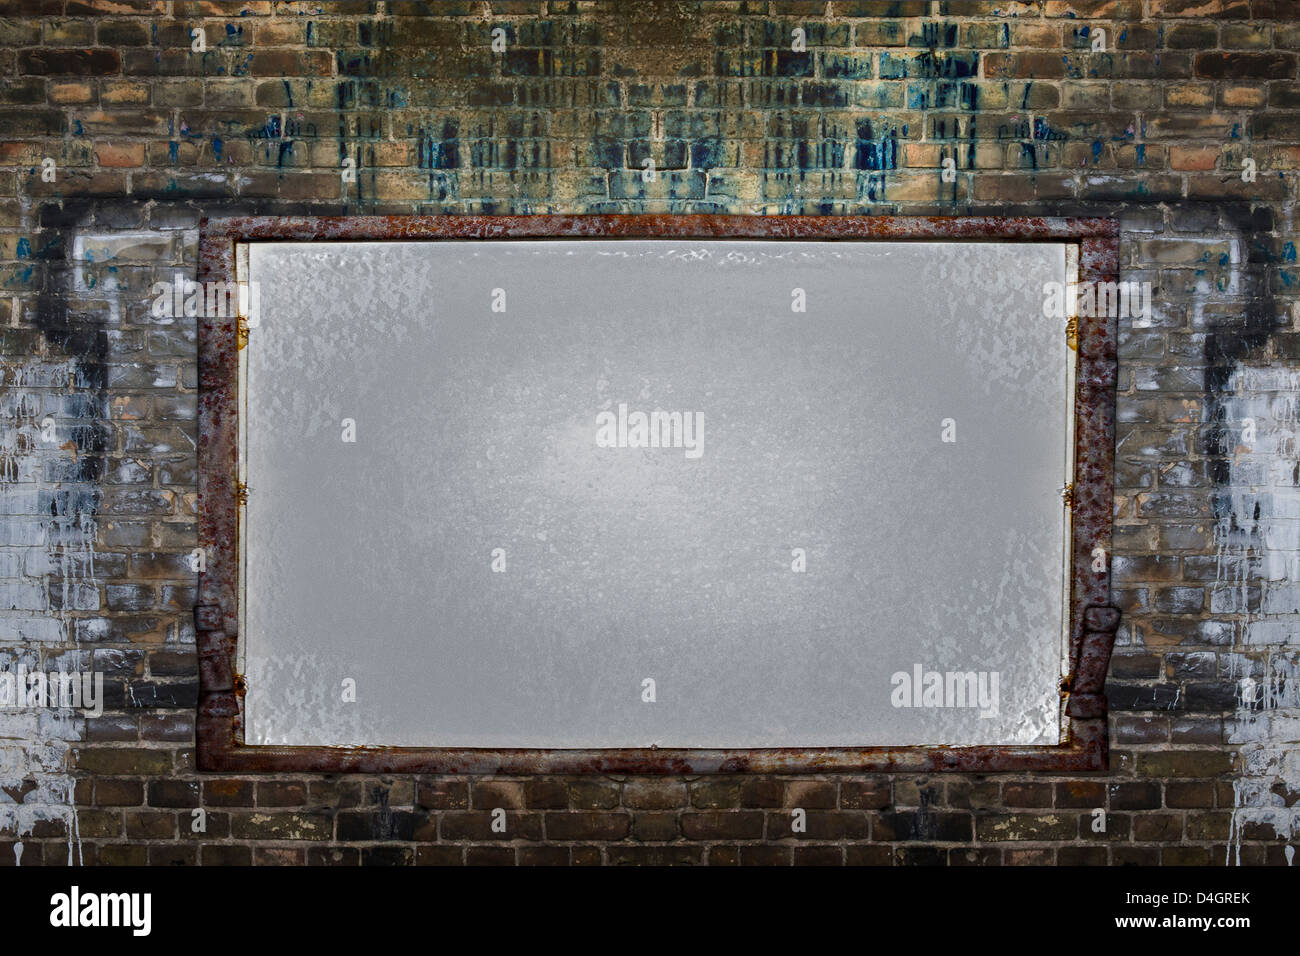 Filthy brick wall with empty framed board - Stock Image